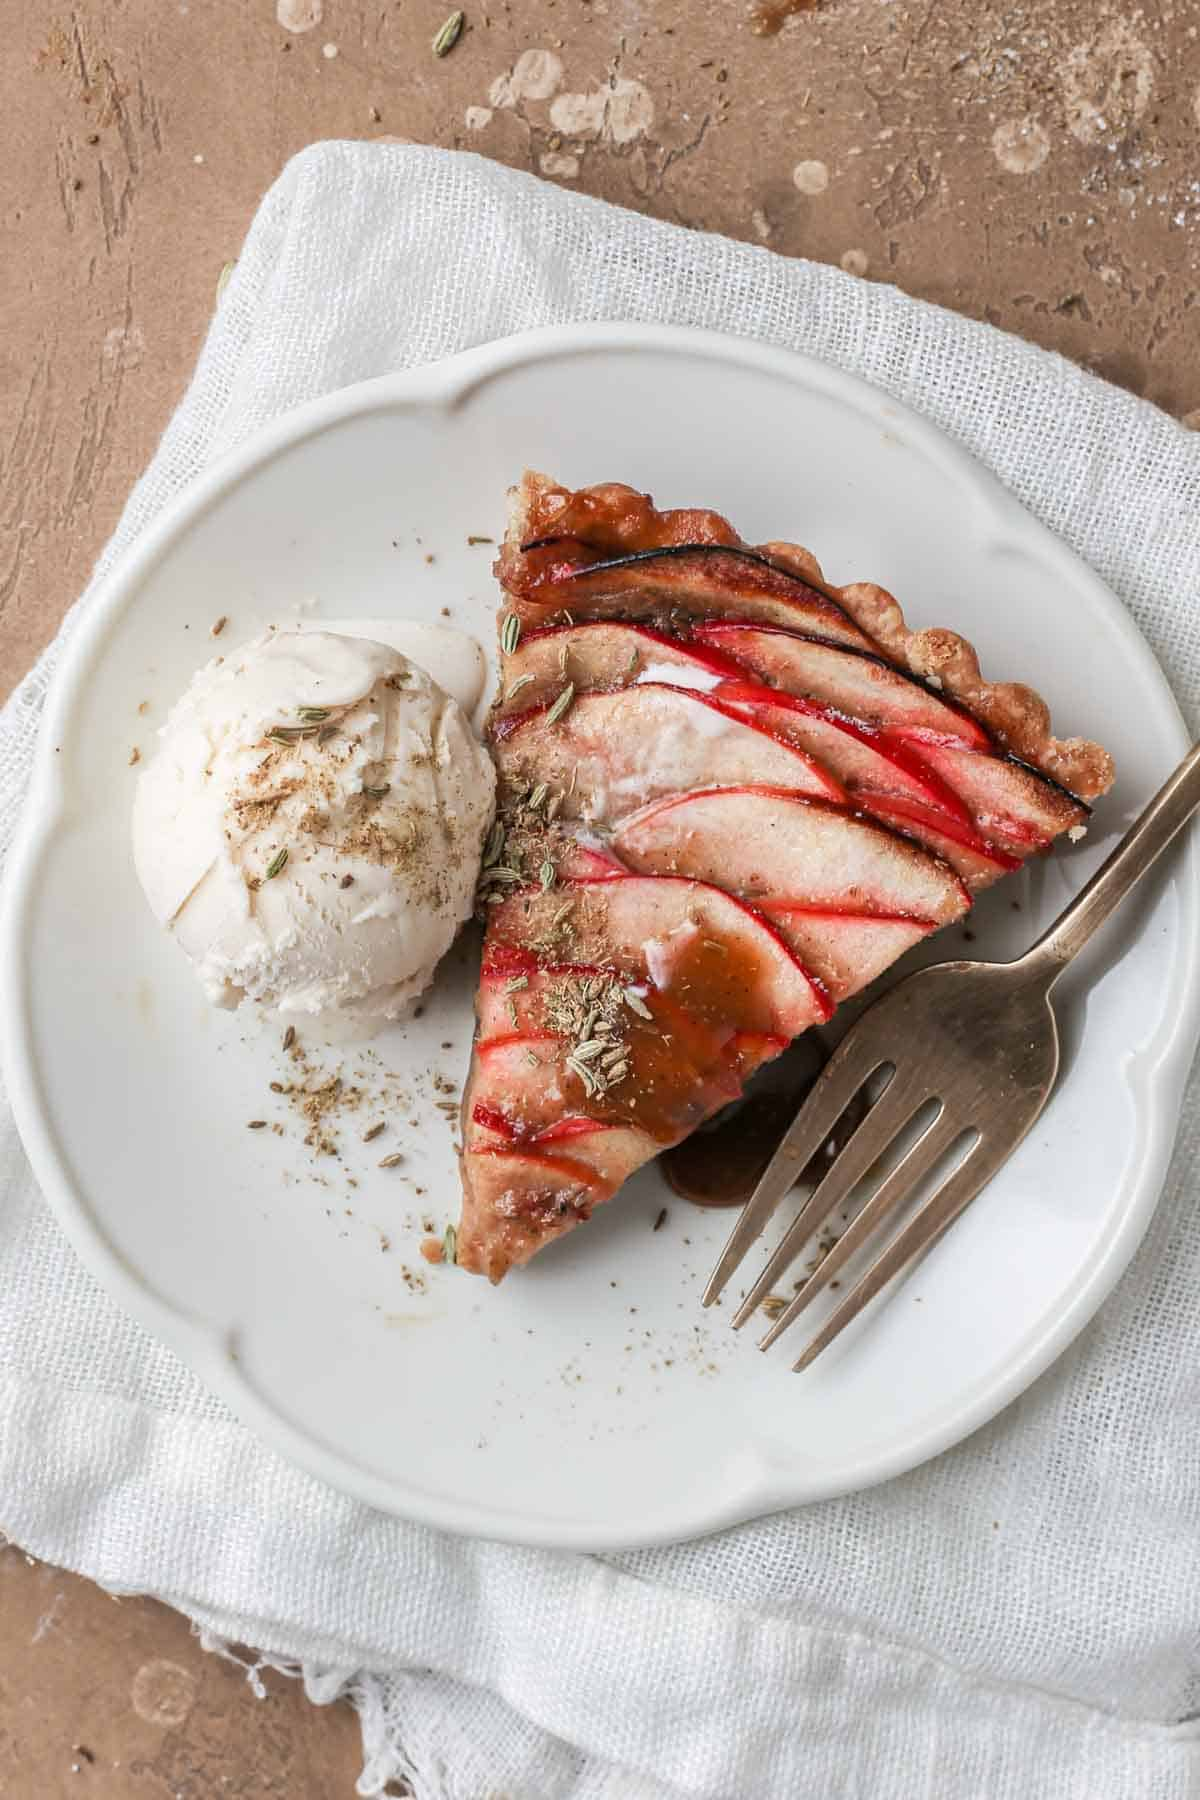 Slice of apple caramel tart, drizzled with fennel caramel and served with a scoop of ice-cream.